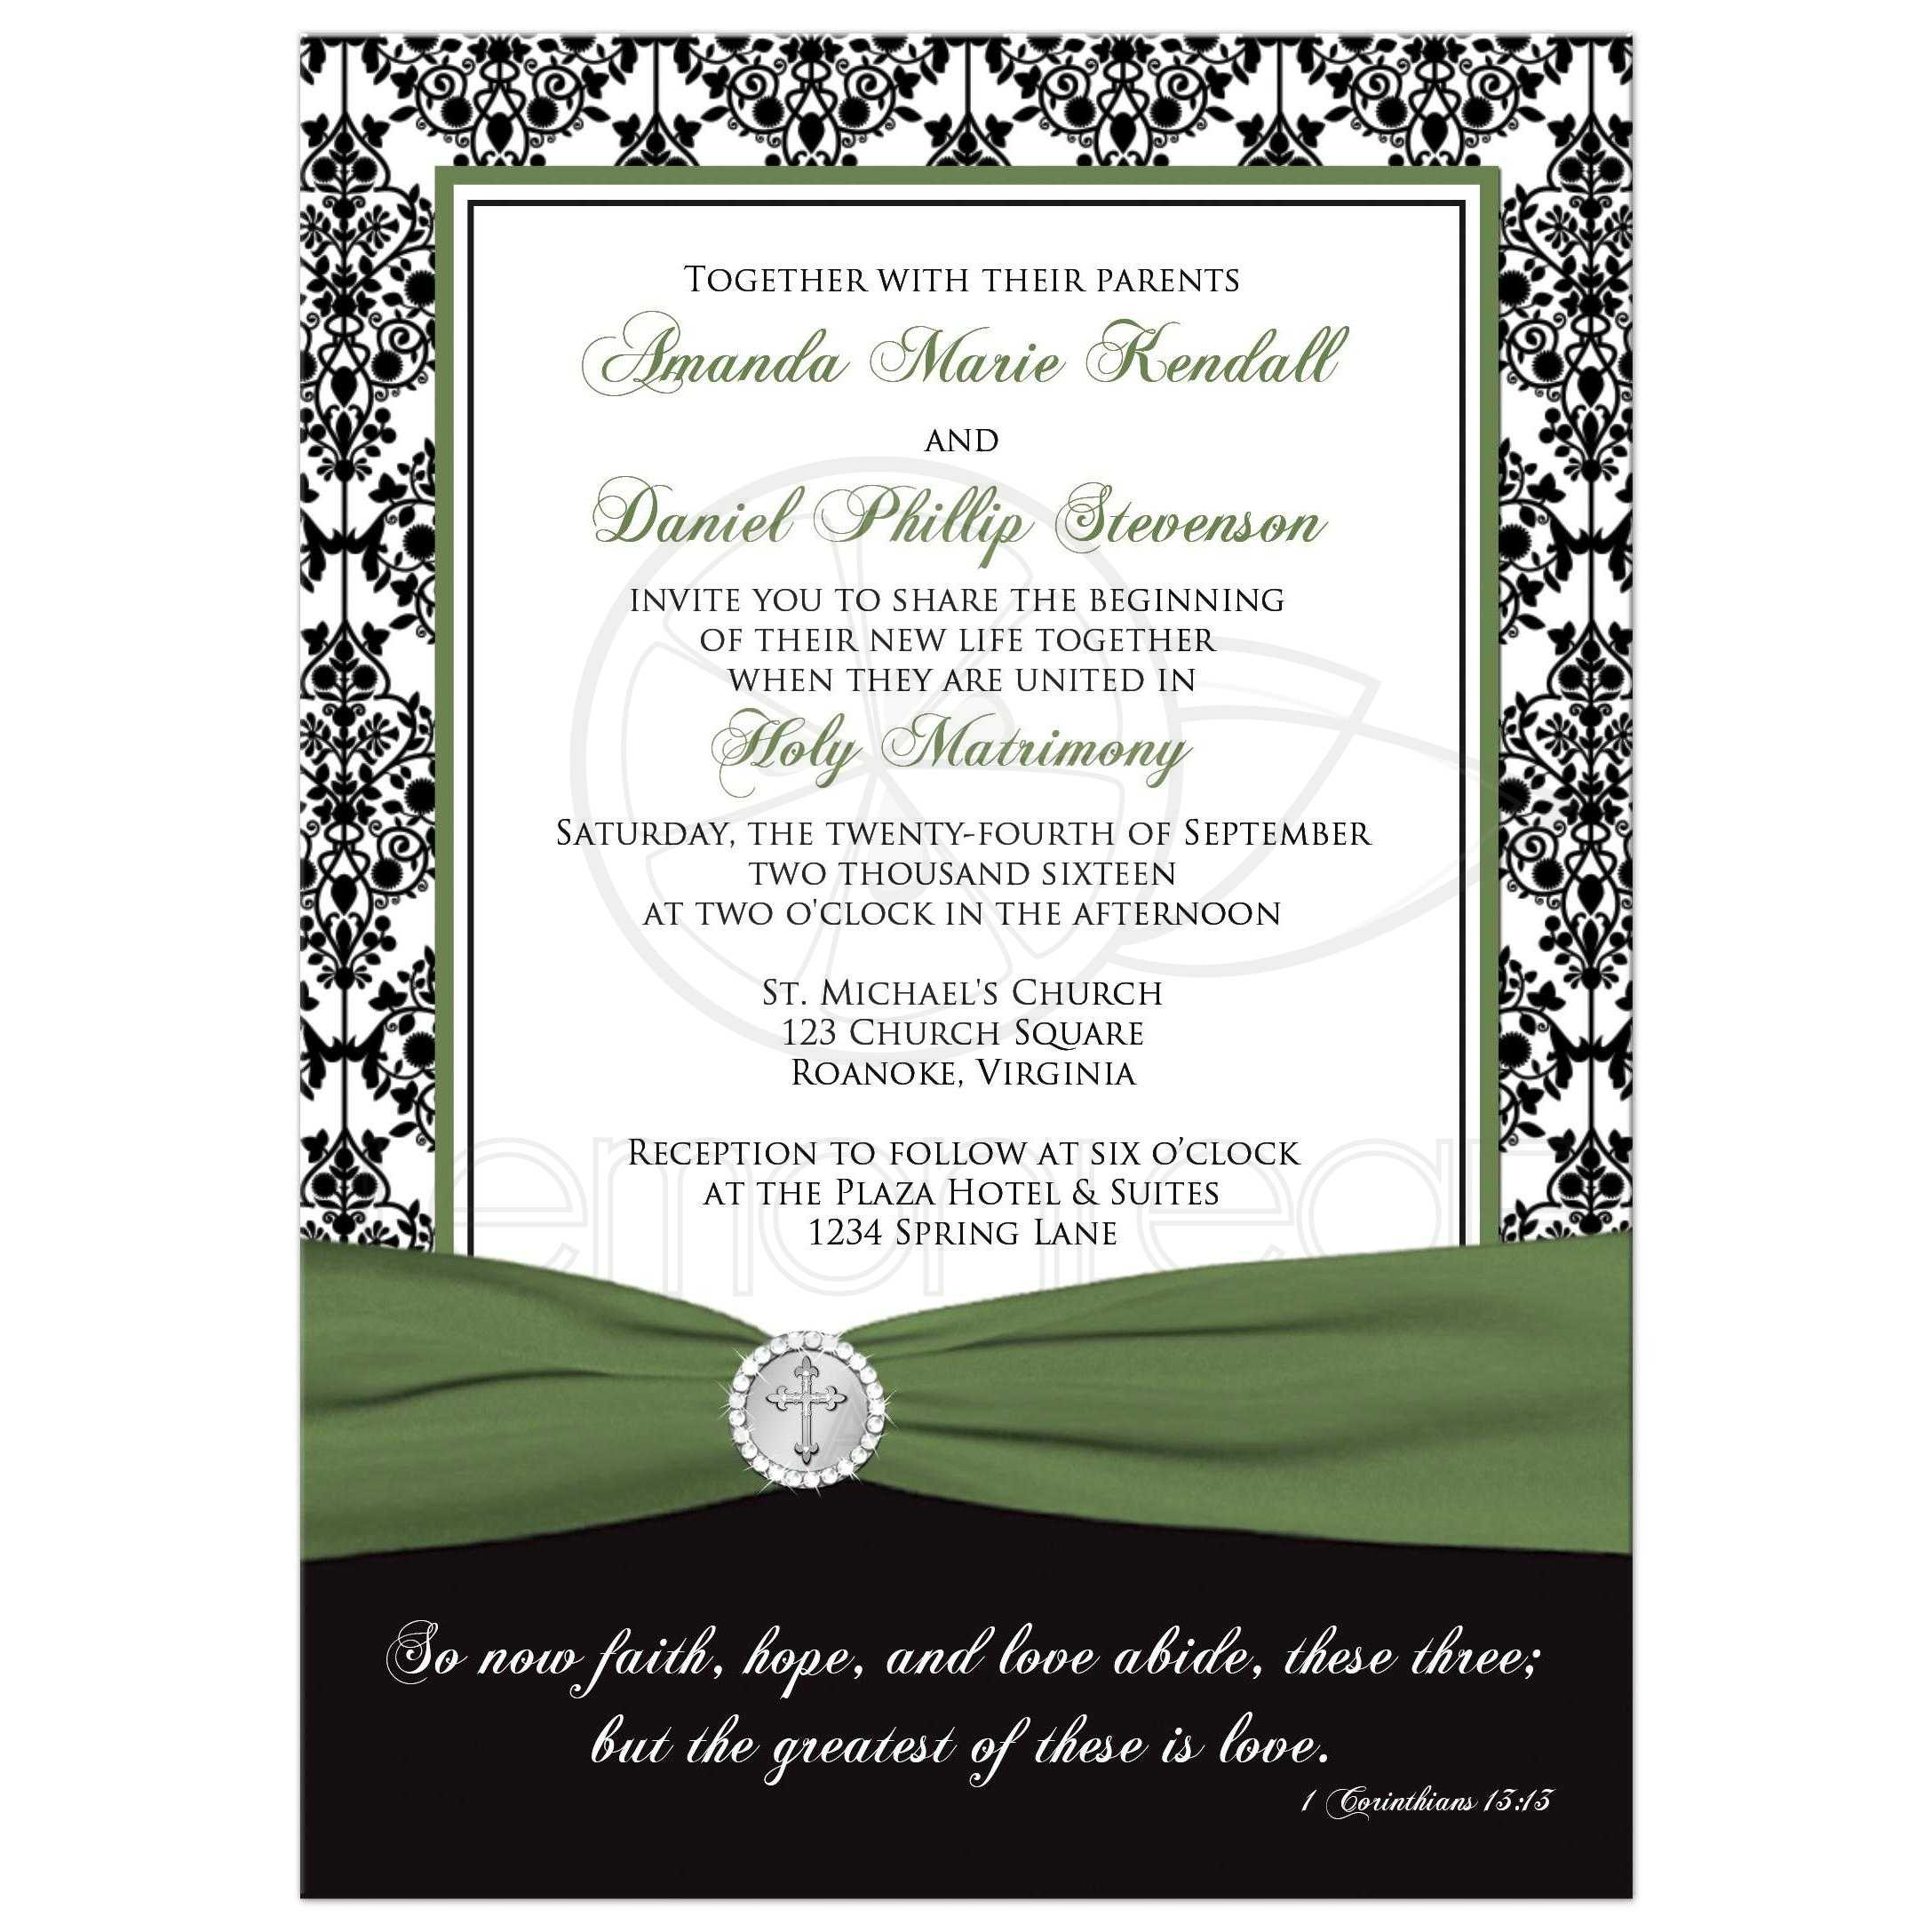 Christian Wedding Invitation | Black, White Damask | Printed Clover ...